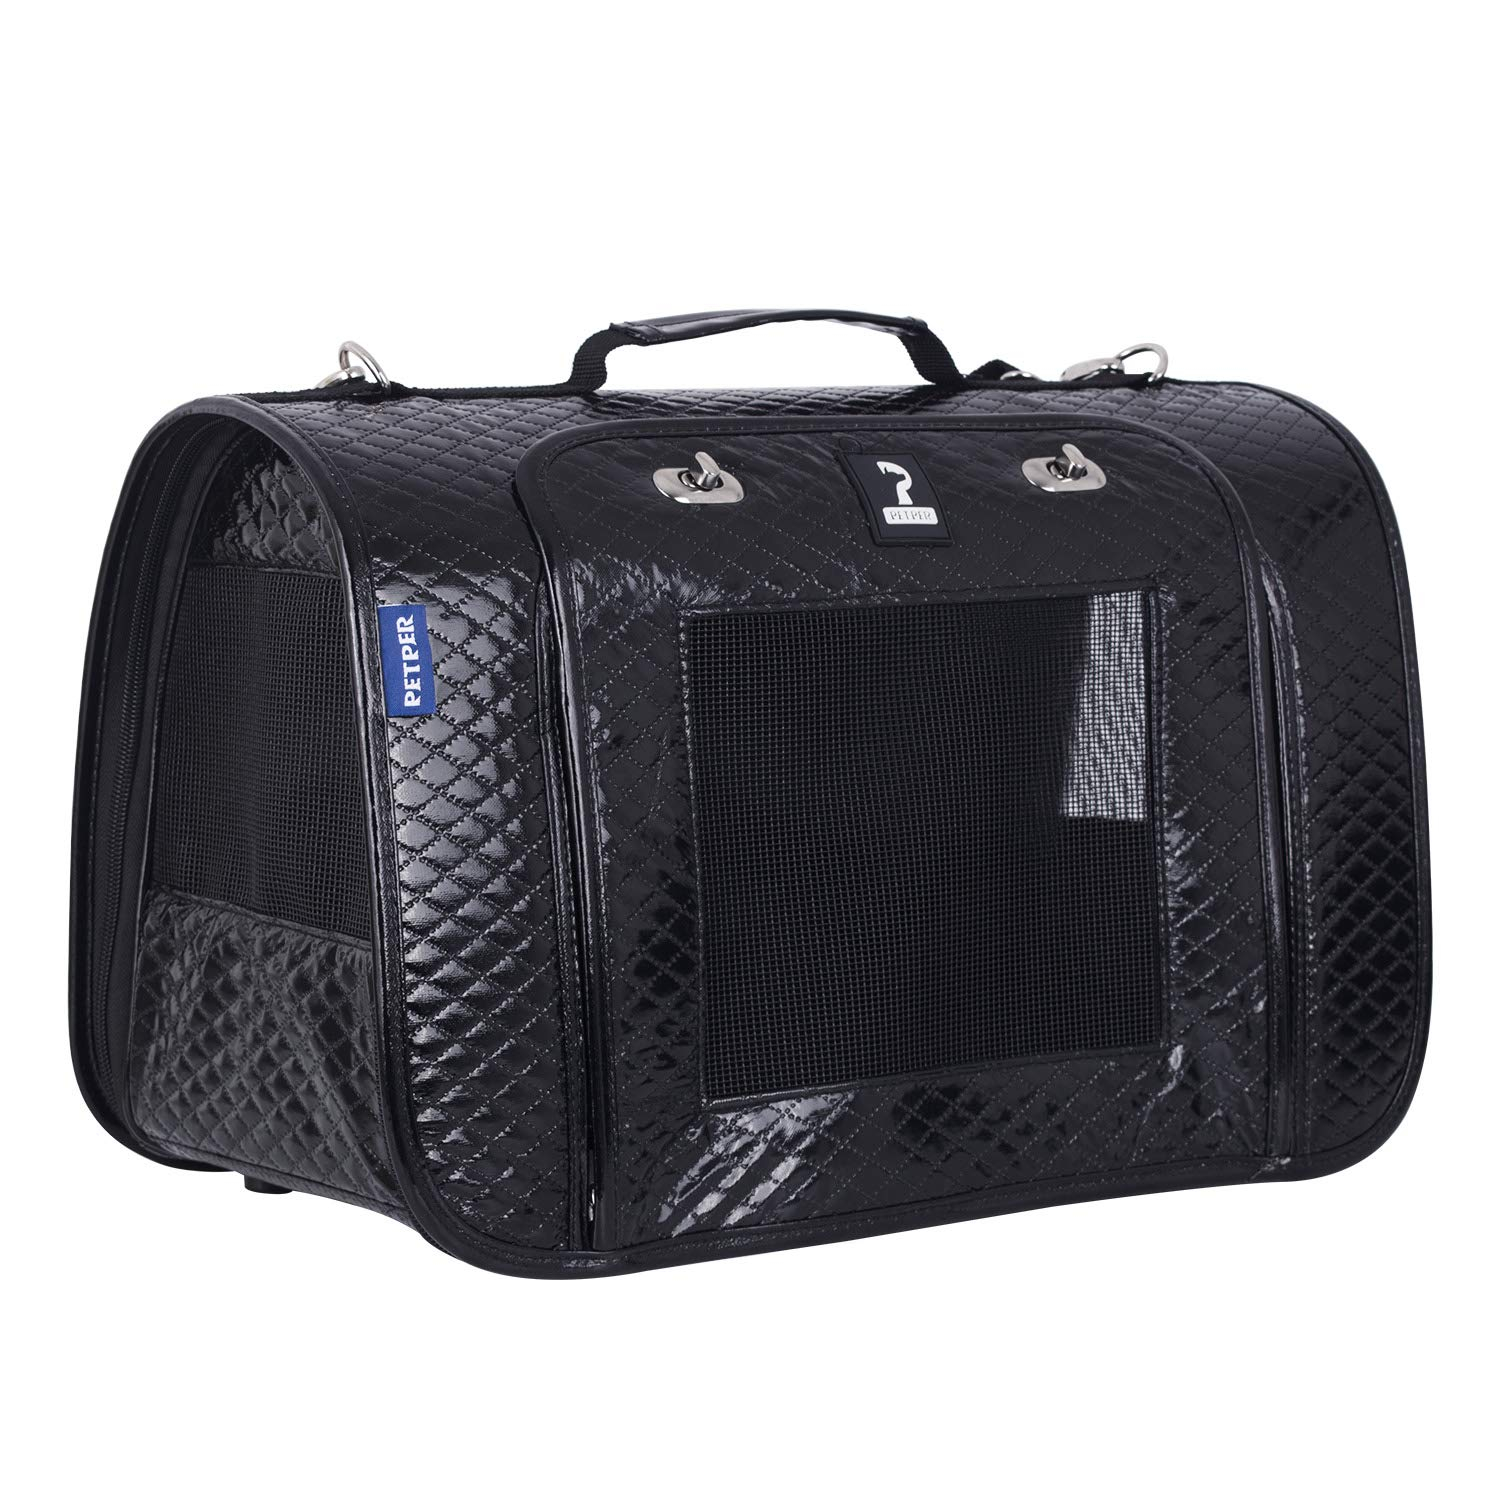 Petper CW-125 Cat Carrier PU Leather Pet Carrier Designed for Cats, Small Dogs, Kittens, Puppies Pet Travel Carrying Handbag for Outdoor Travel Walking Hiking